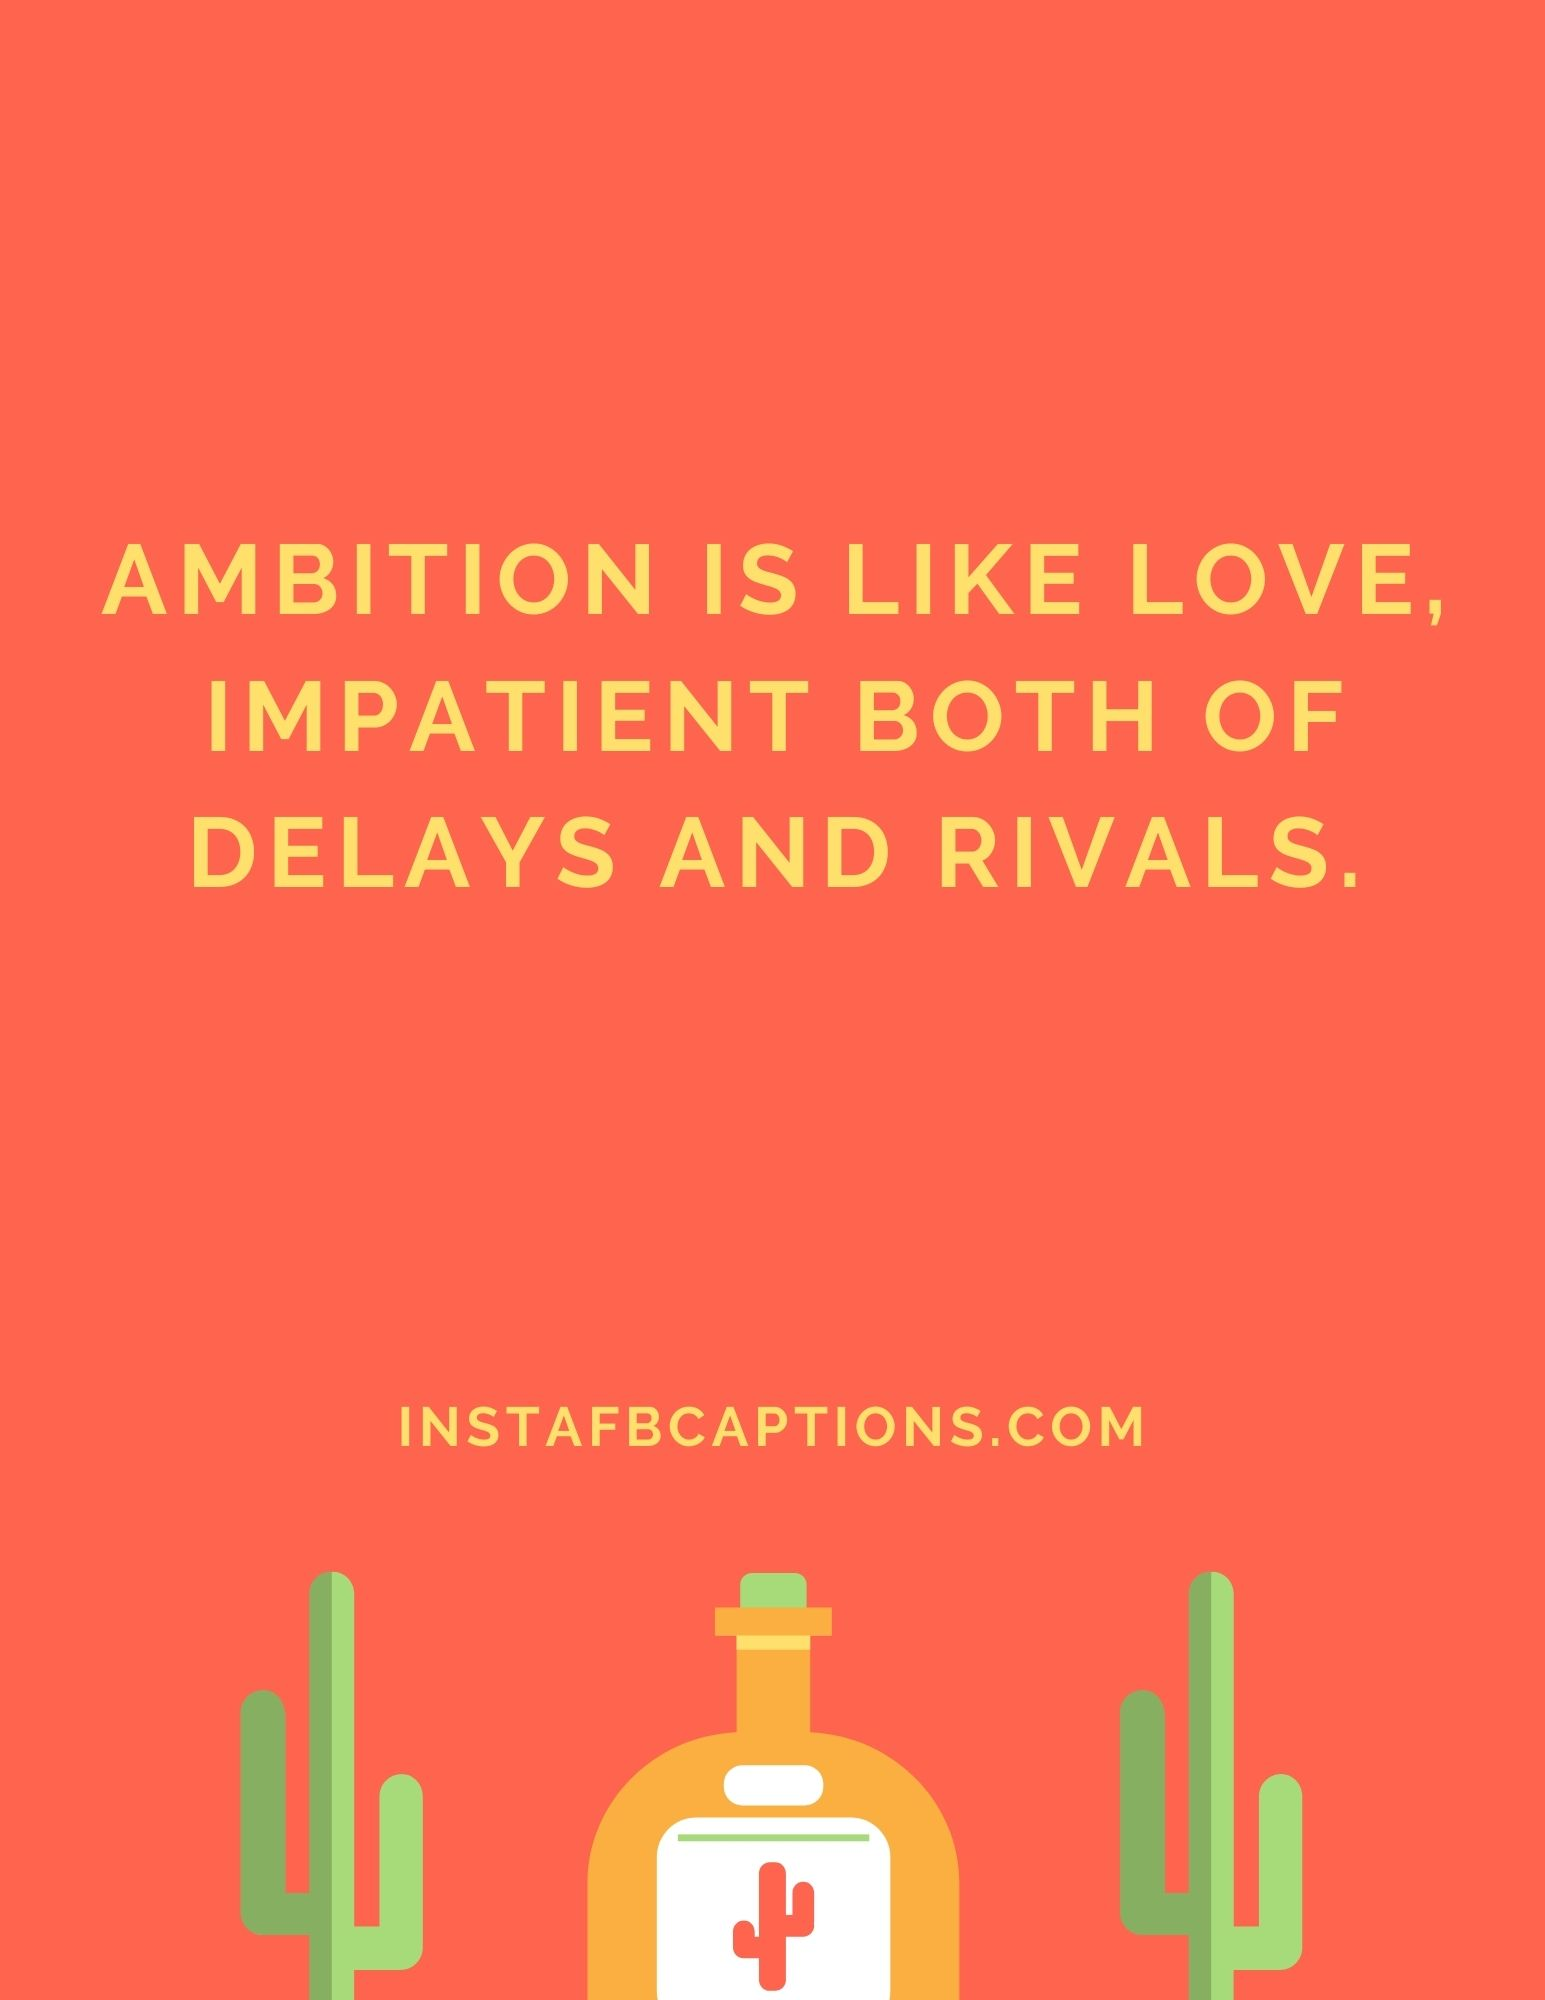 Succesful Ambition Captions  - Succesful Ambition Captions - Optimistic Ambition Captions for Positivity in 2021